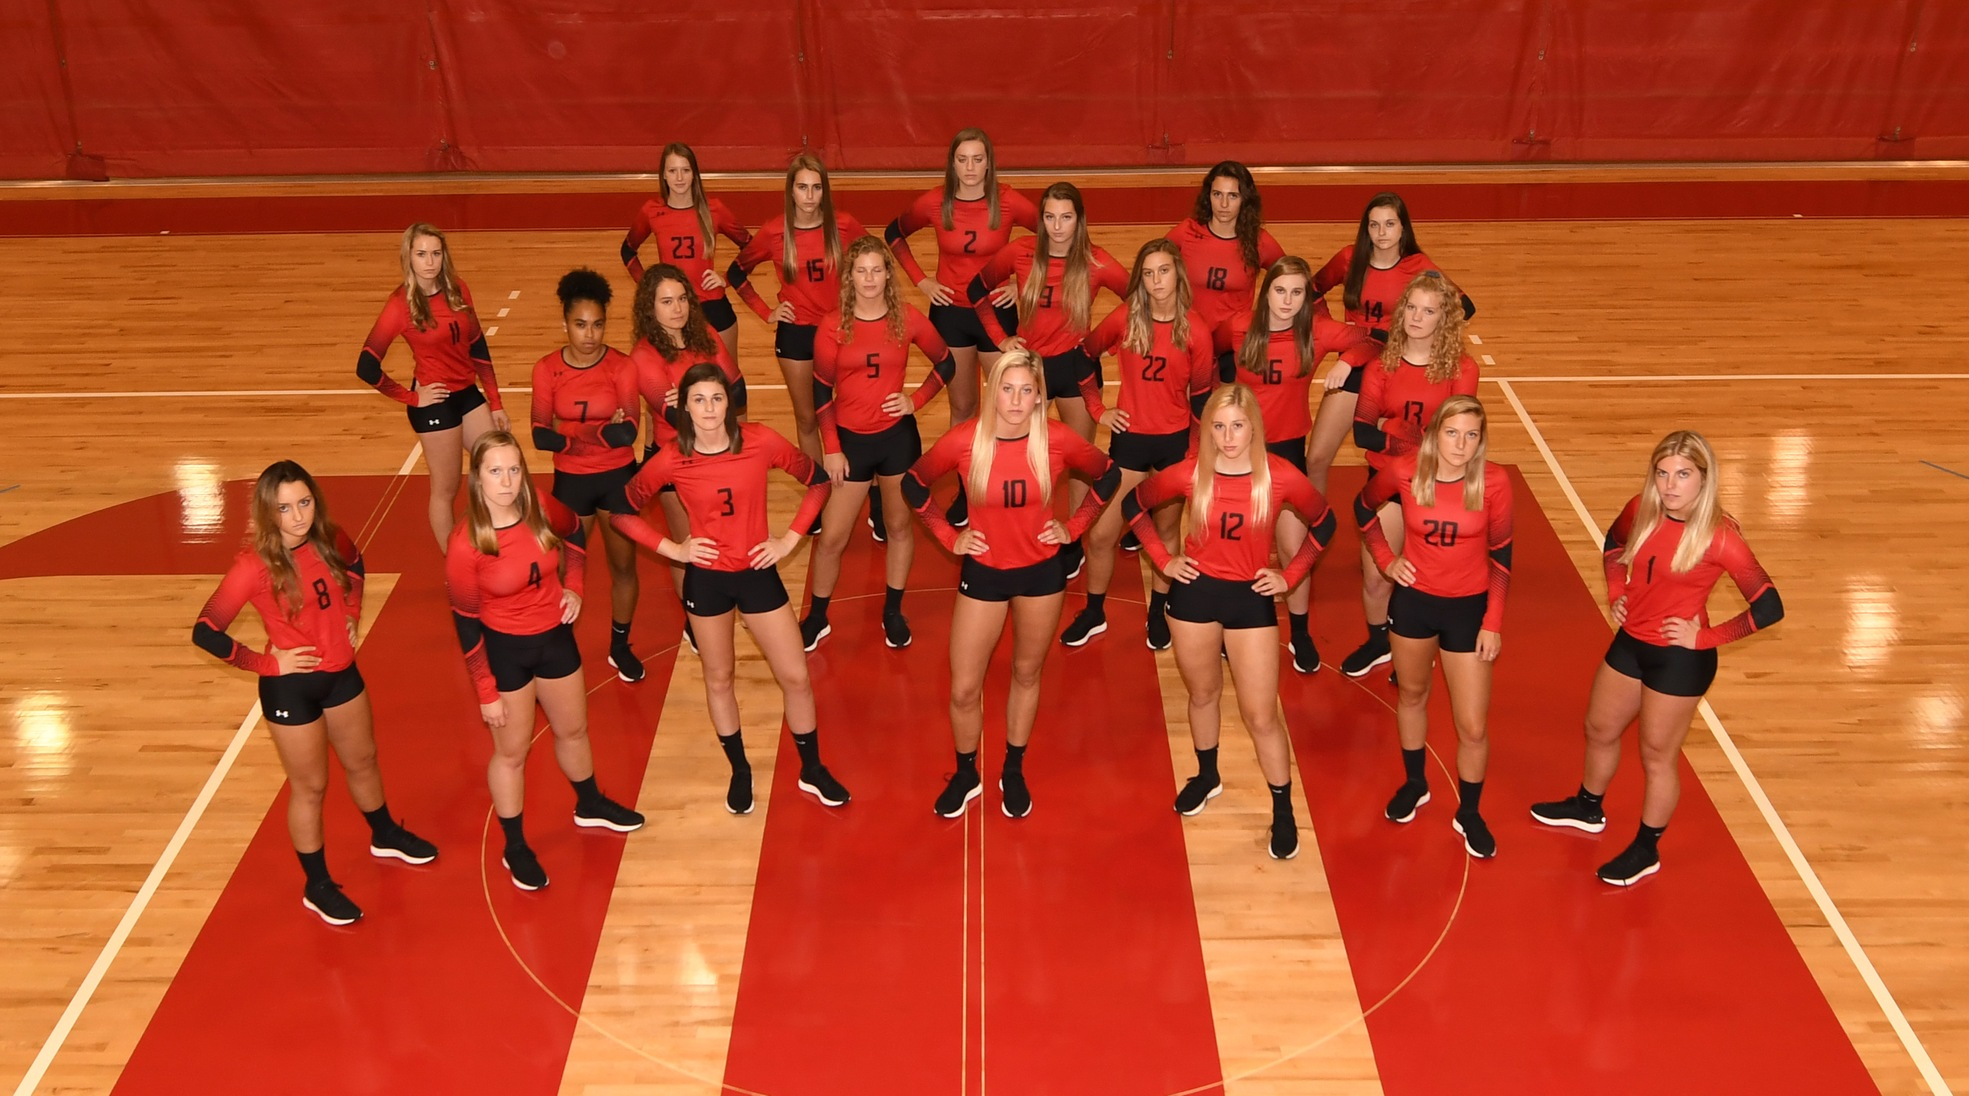 2018 Wittenberg Volleyball